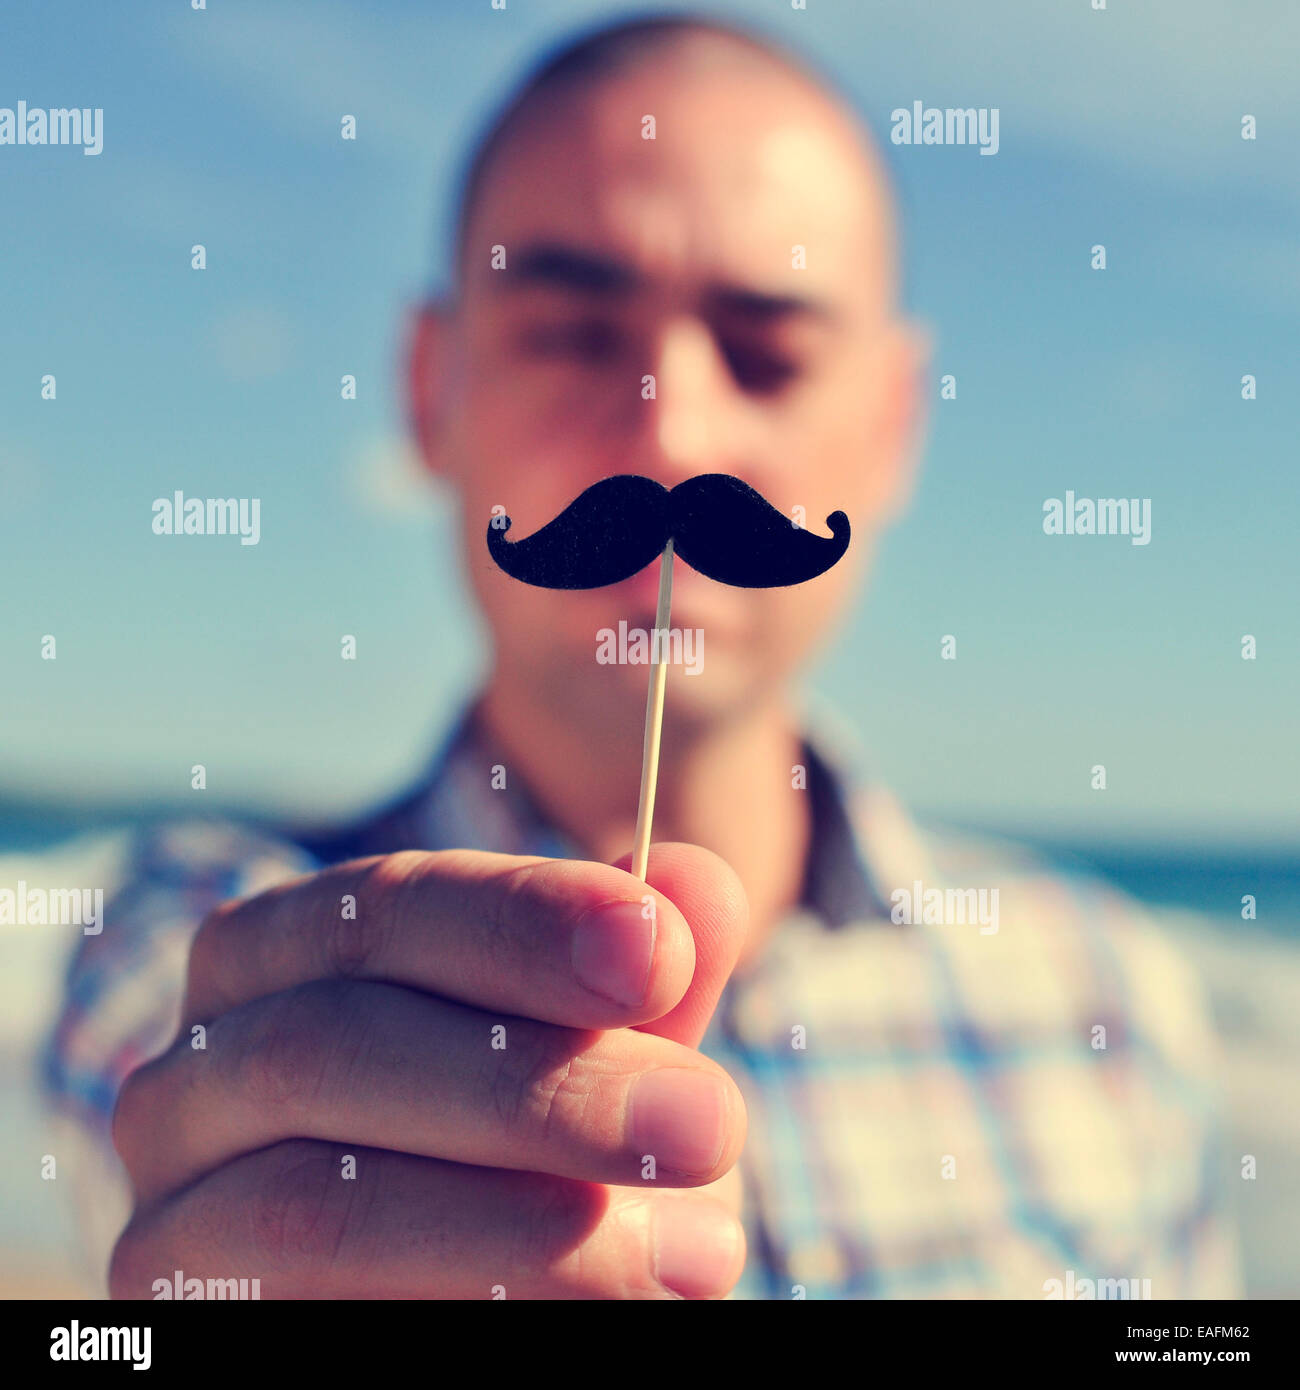 a young man holding a fake moustache in a stick in front of his face - Stock Image